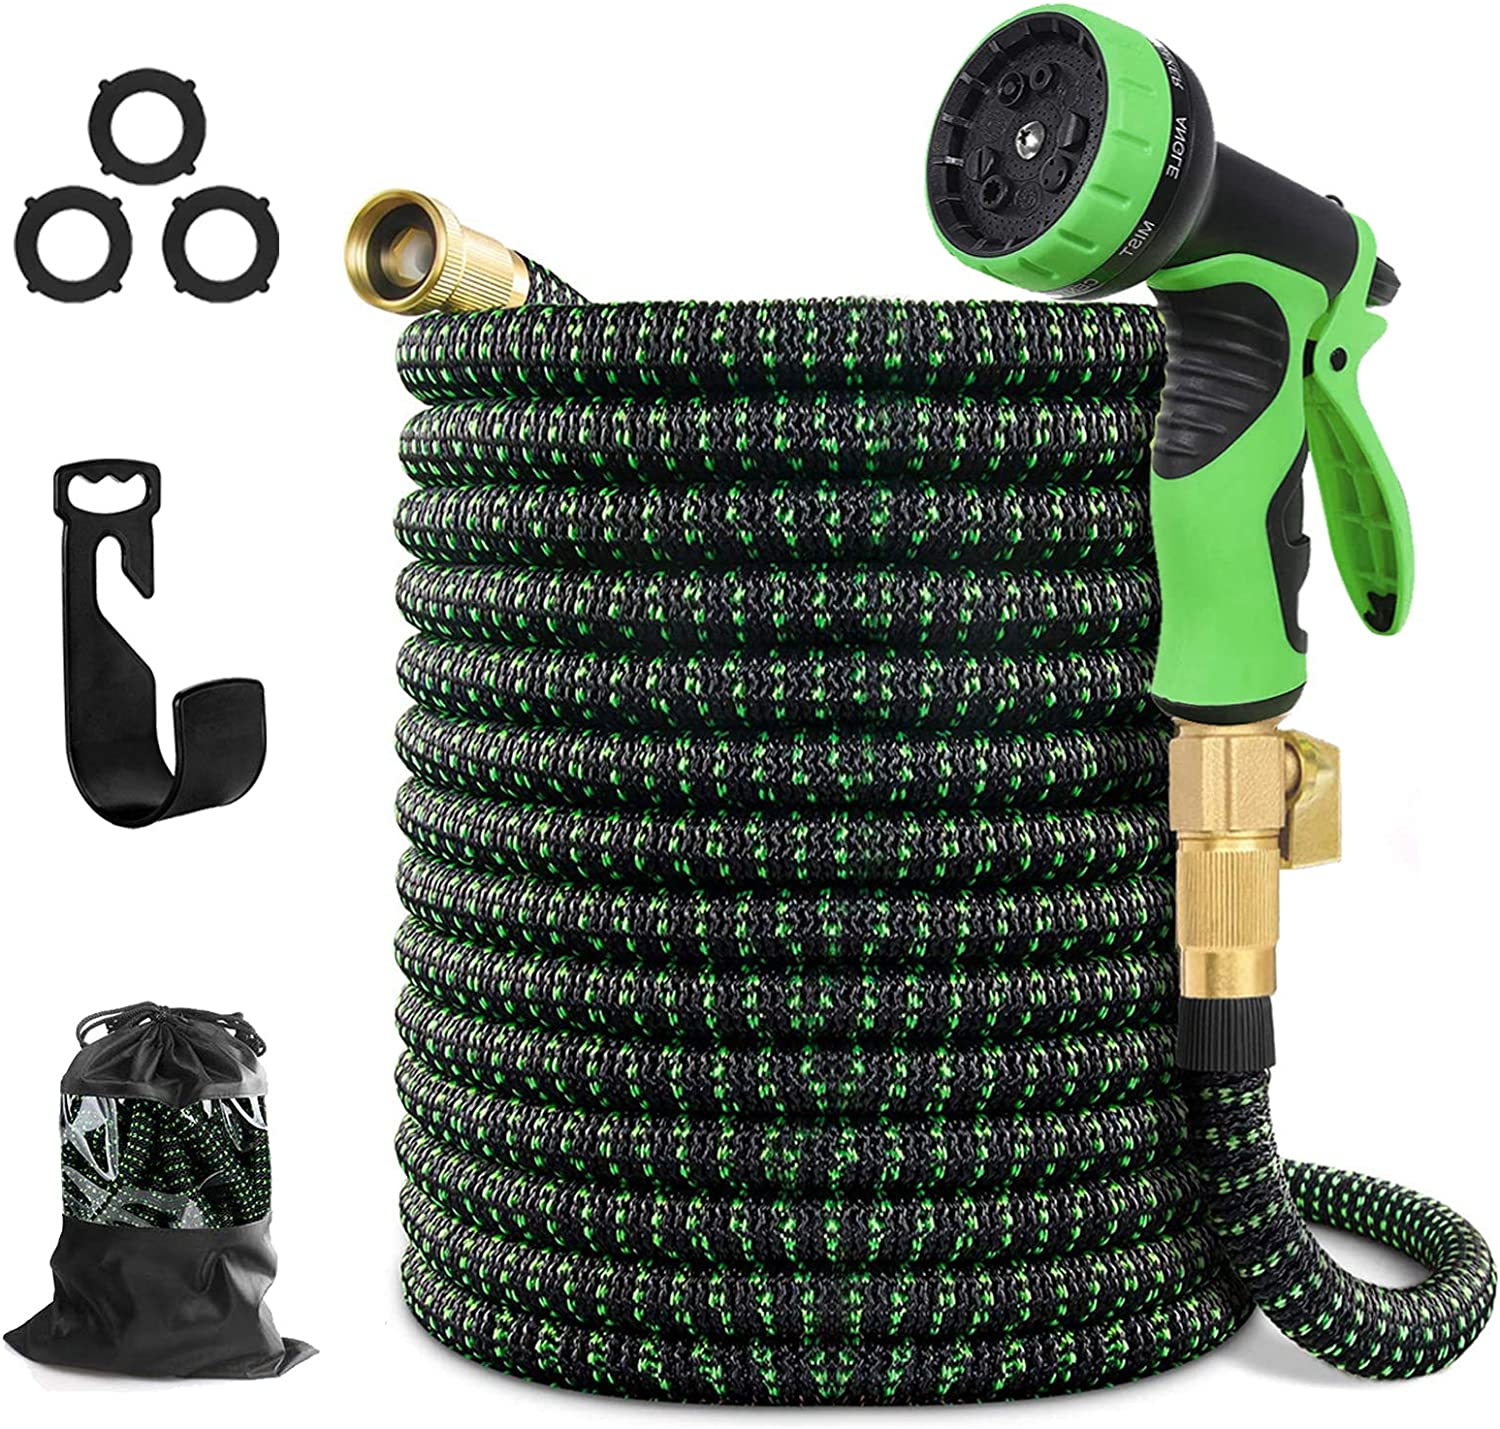 """Expandable Water Hose Garden Hose 100Ft Nozzle Pocket Flexible Retractable Hose with Triple Layer Latex Core 3/4"""" Solid Brass Fittings 3750D Extra Strength Fabric 10 Function Nozzle for All Your Need"""